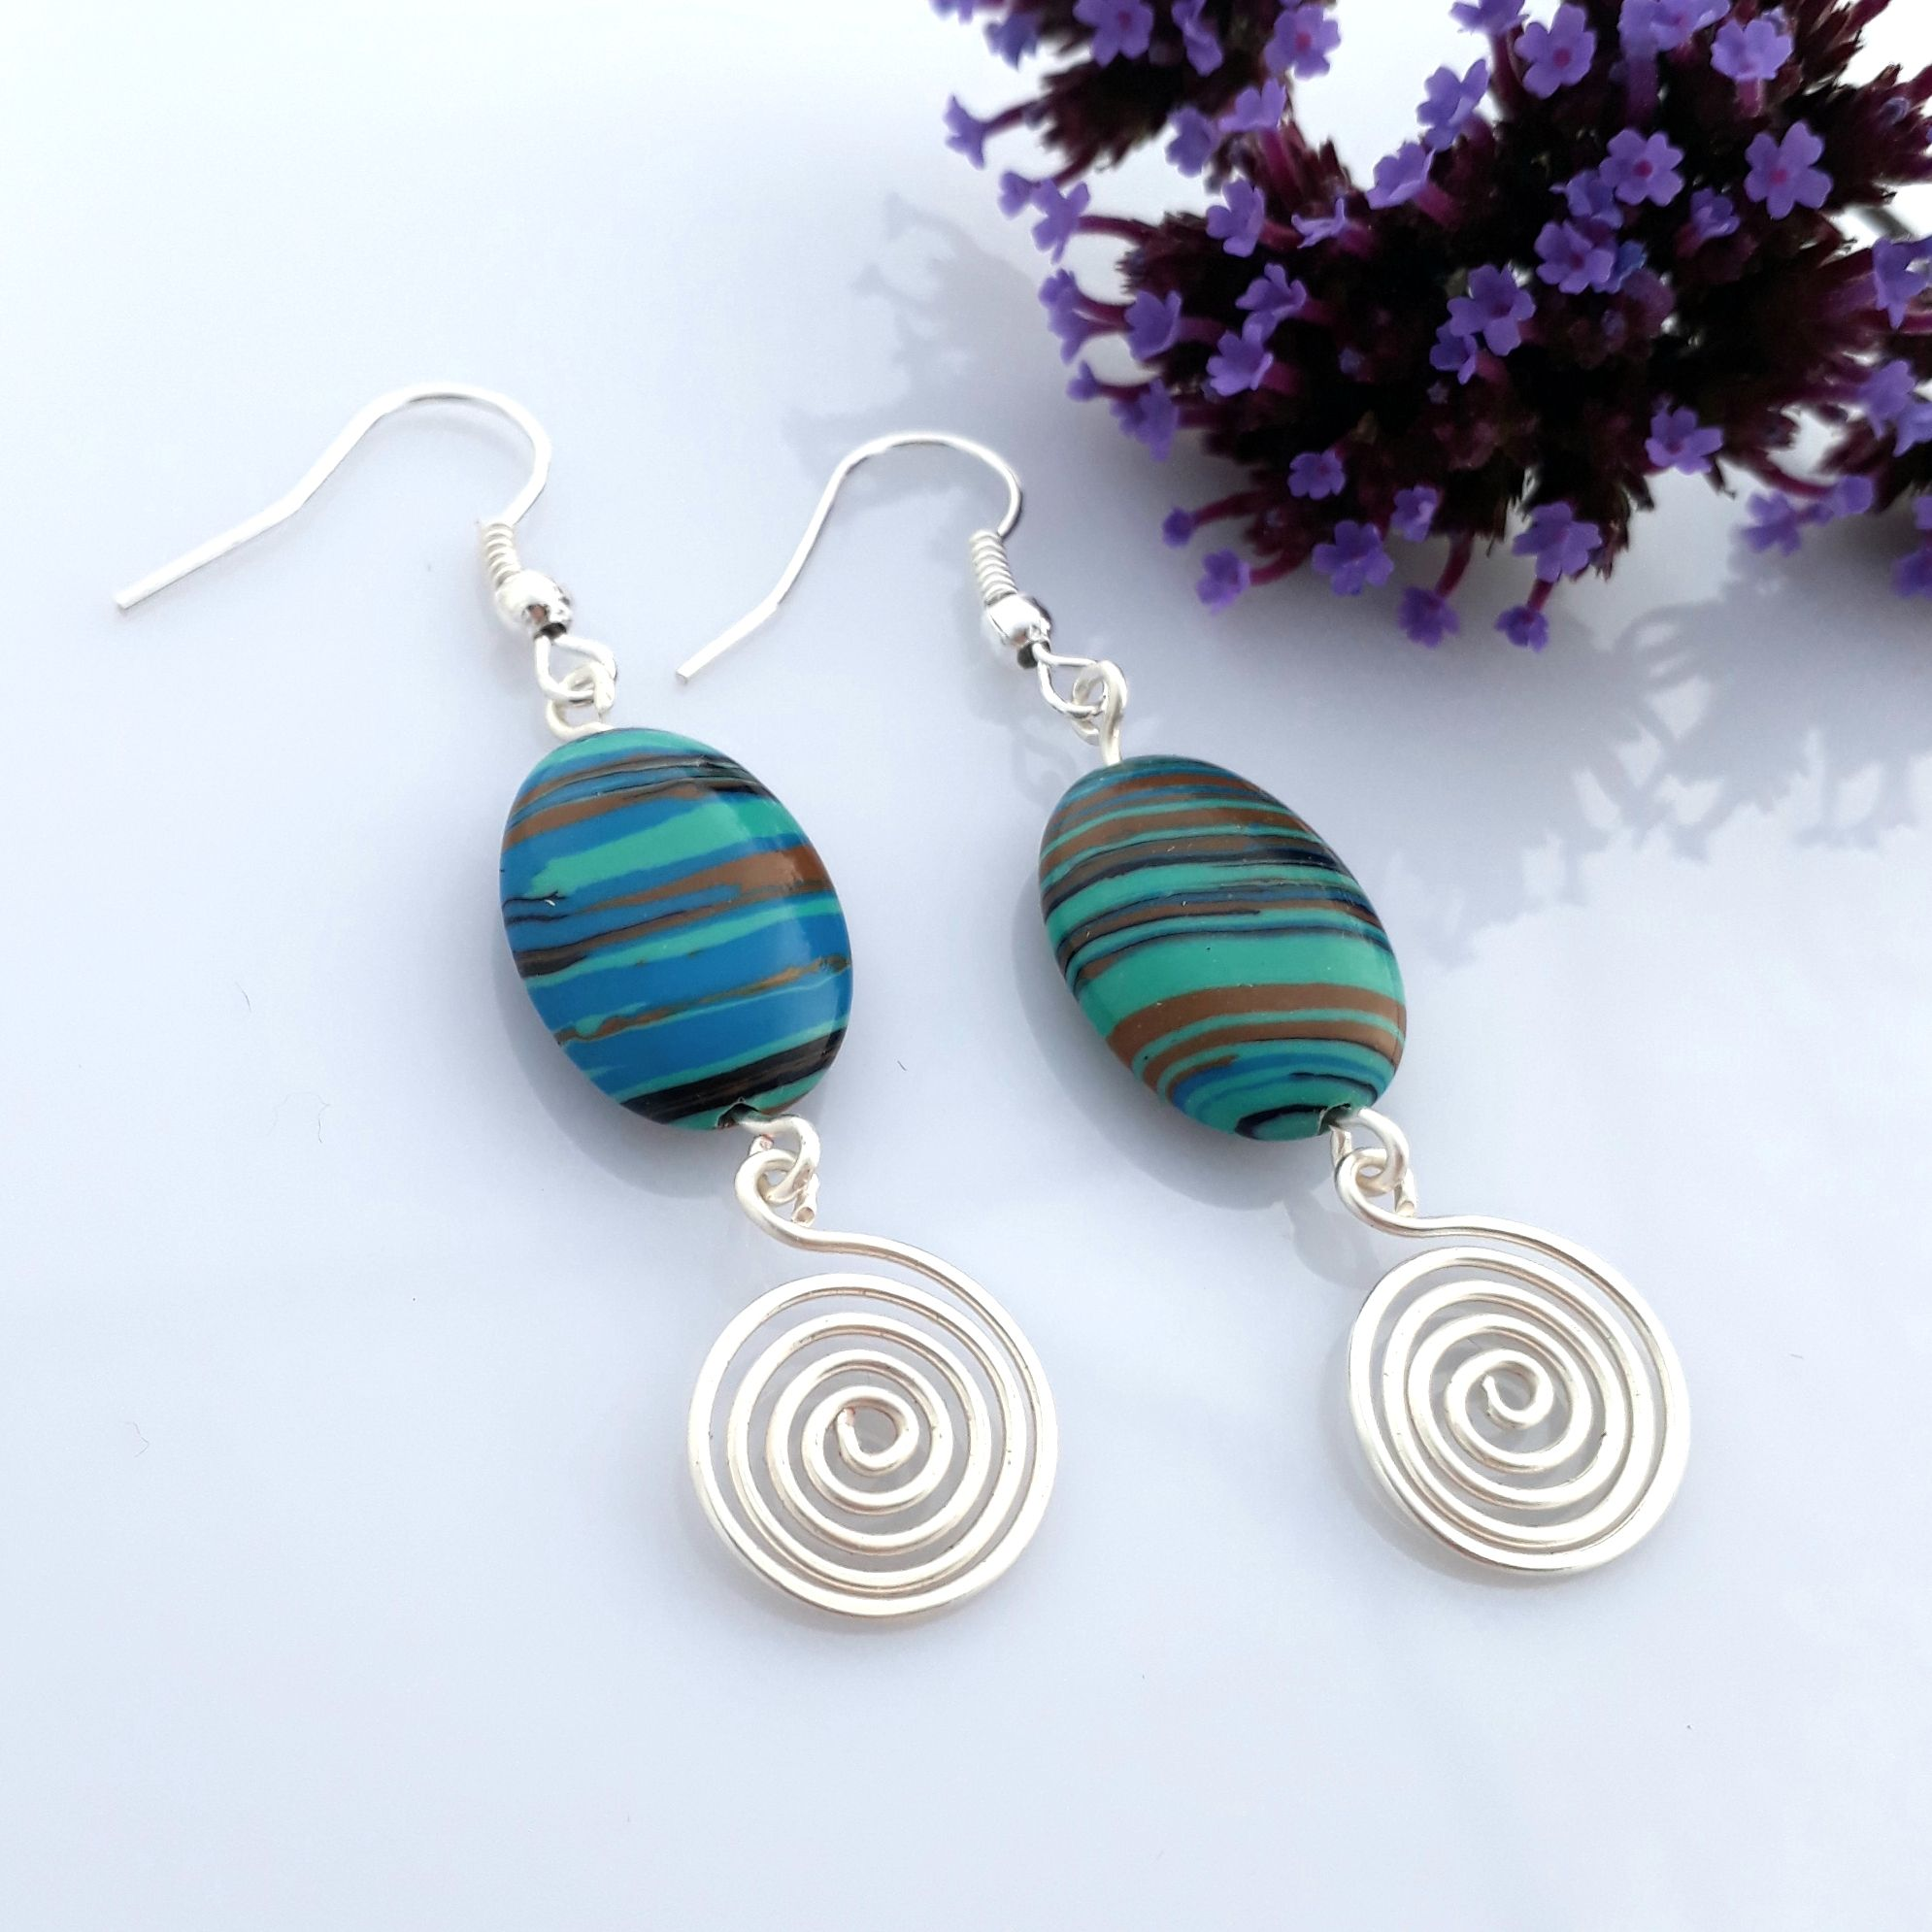 Blue Malachite and silver spiral earrings